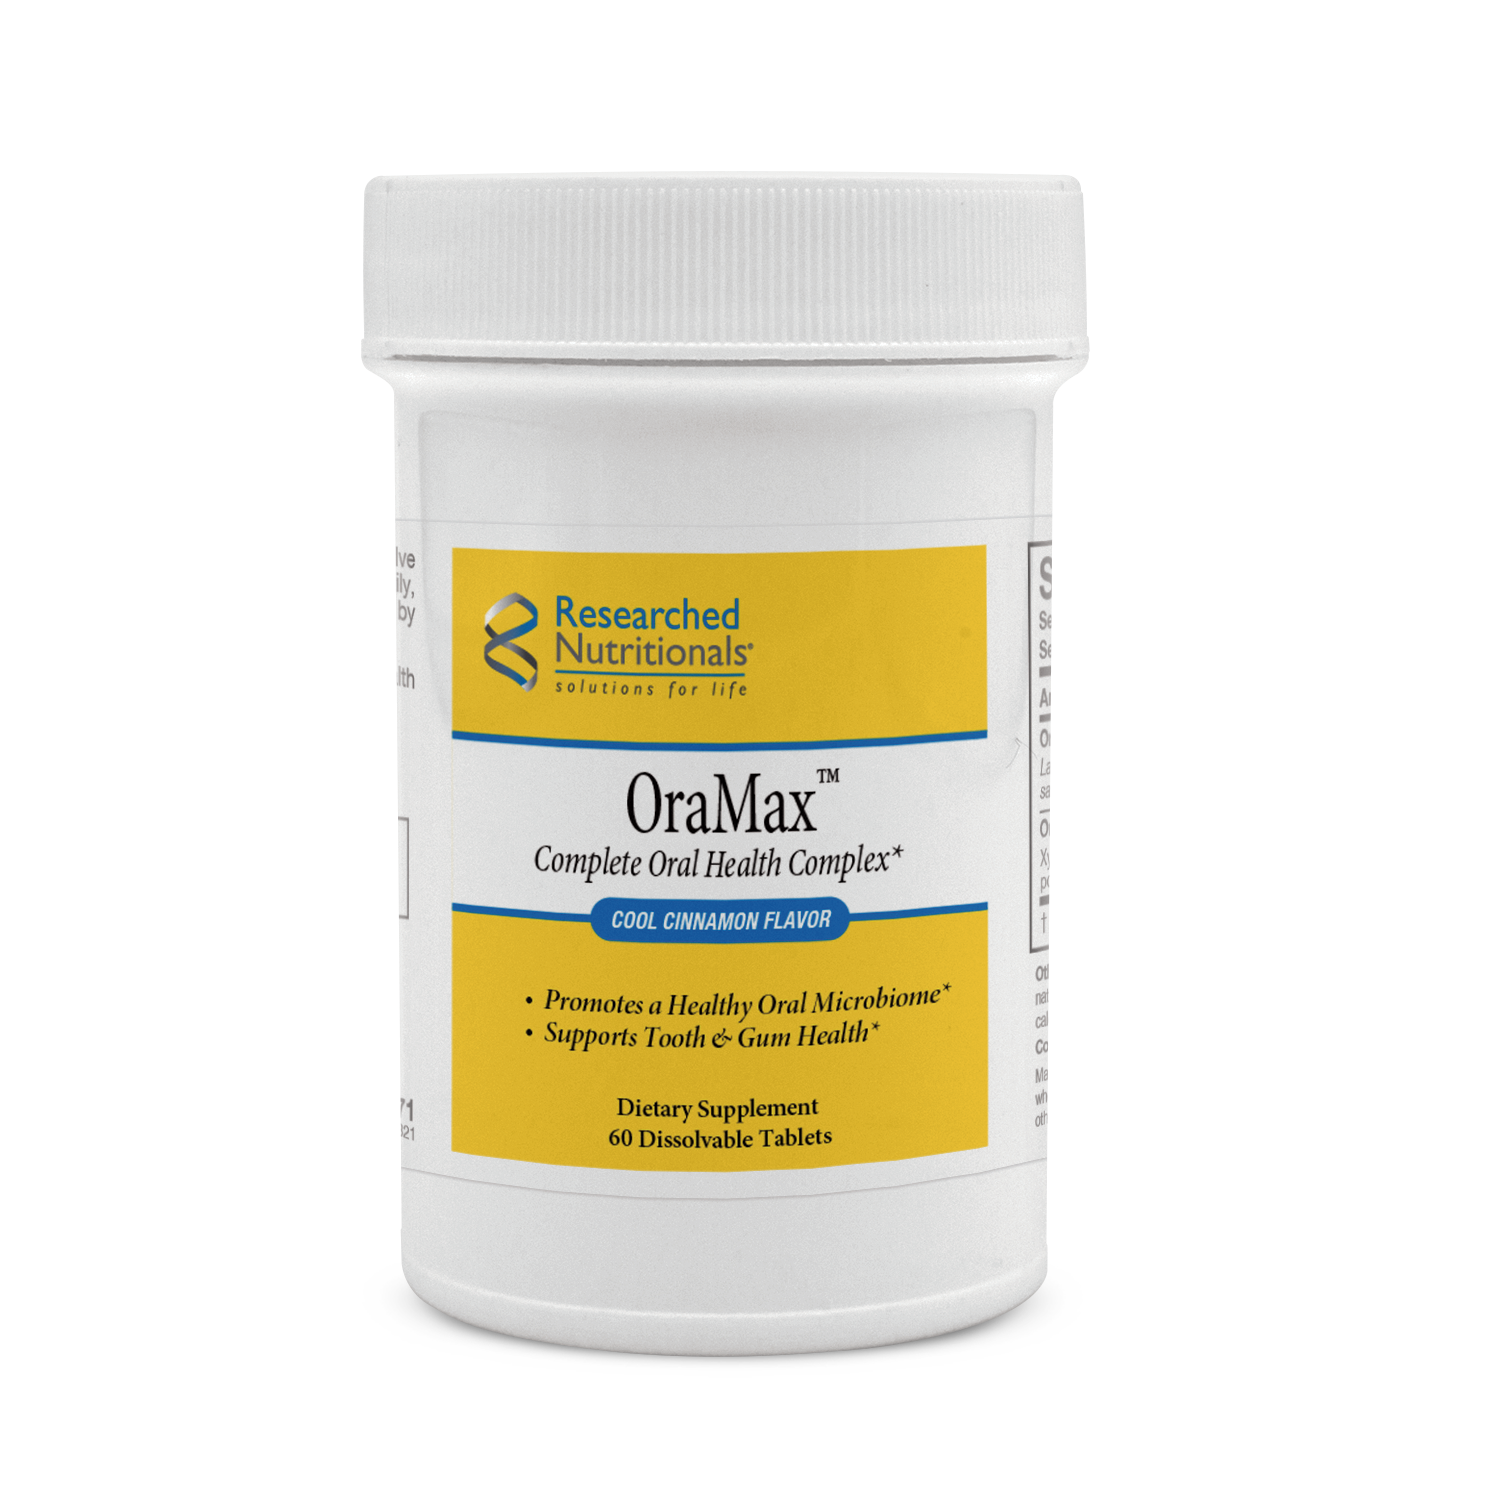 OraMax oral probiotic health complex